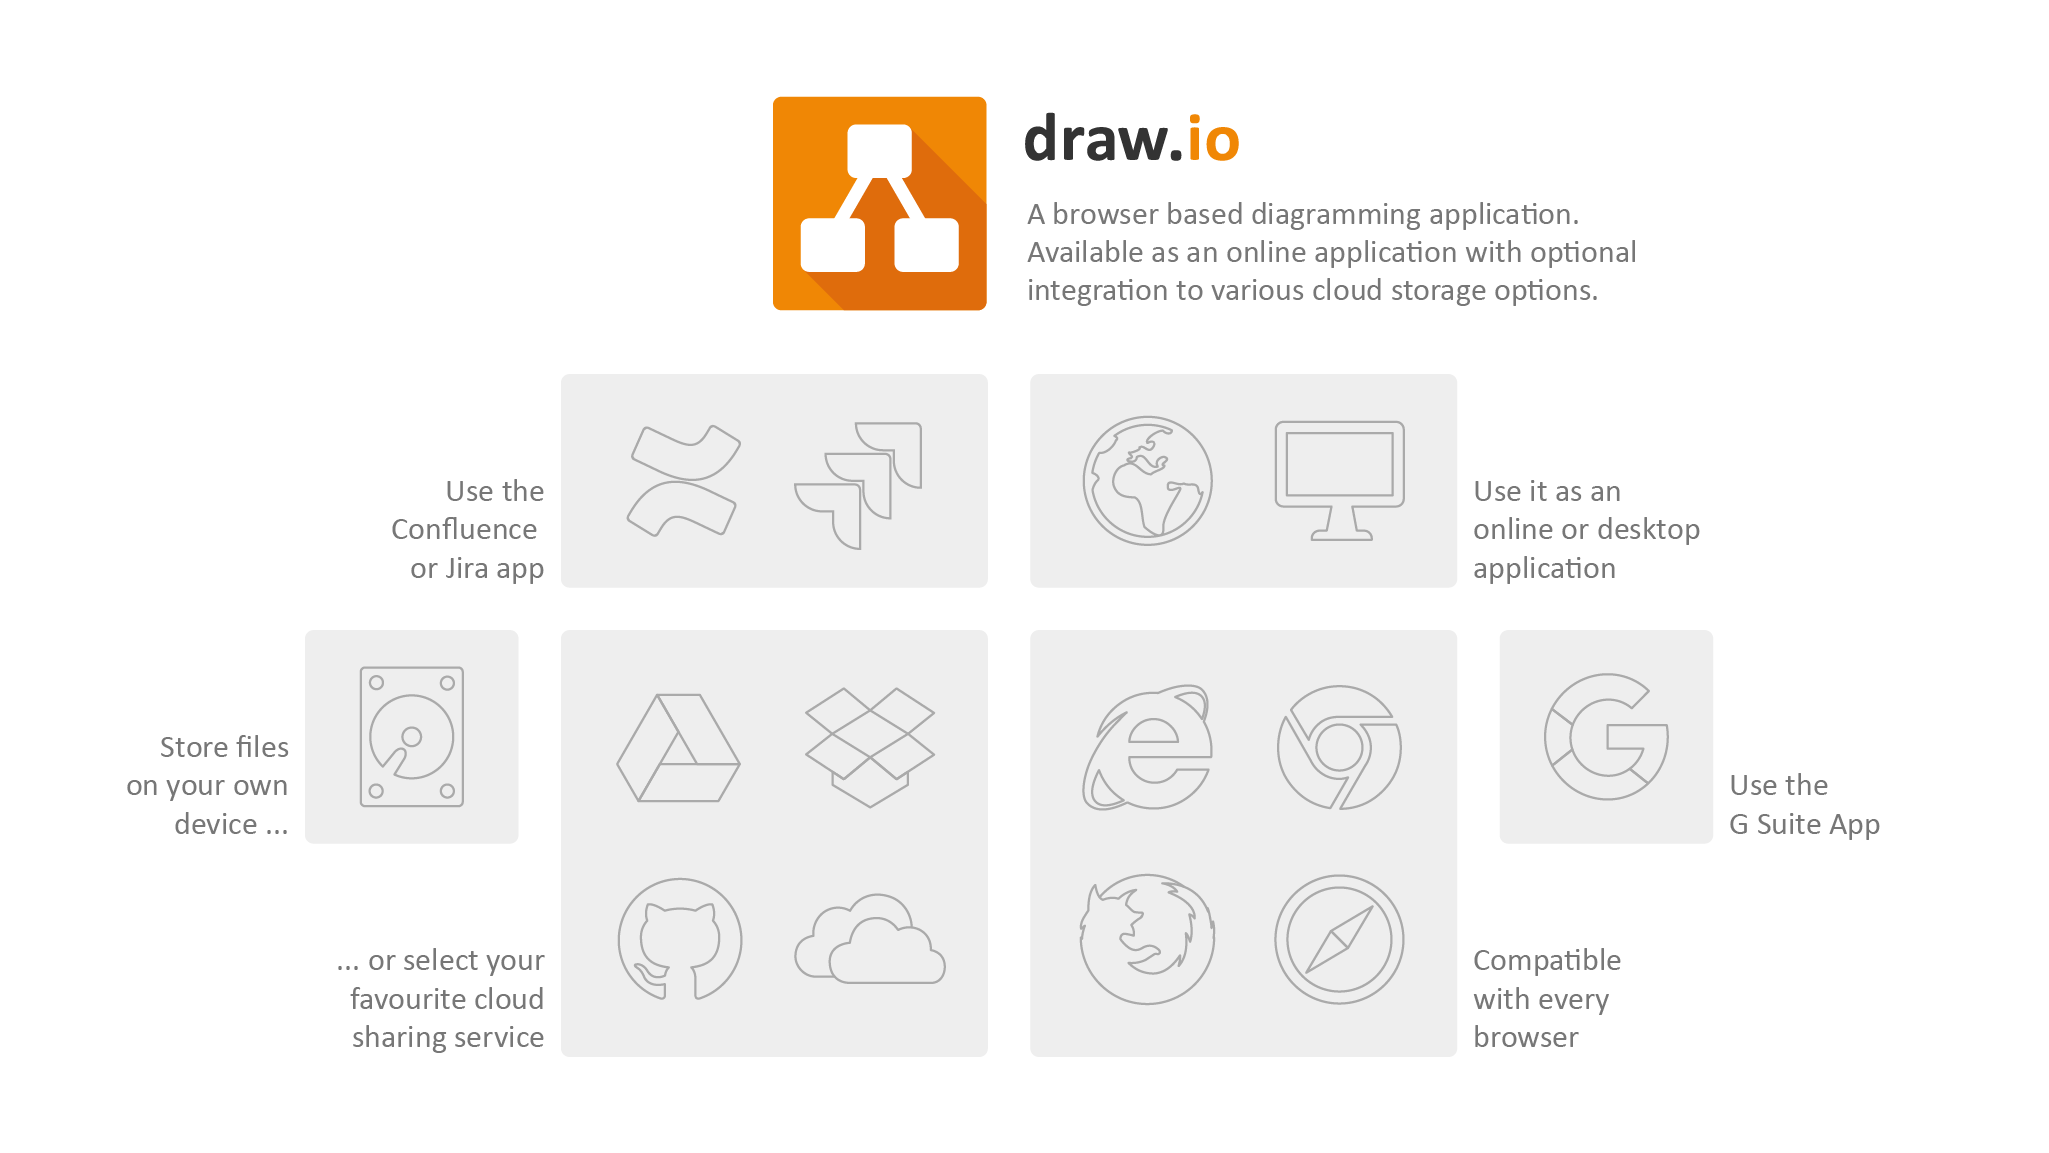 The diagramming tool draw.io works everywhere